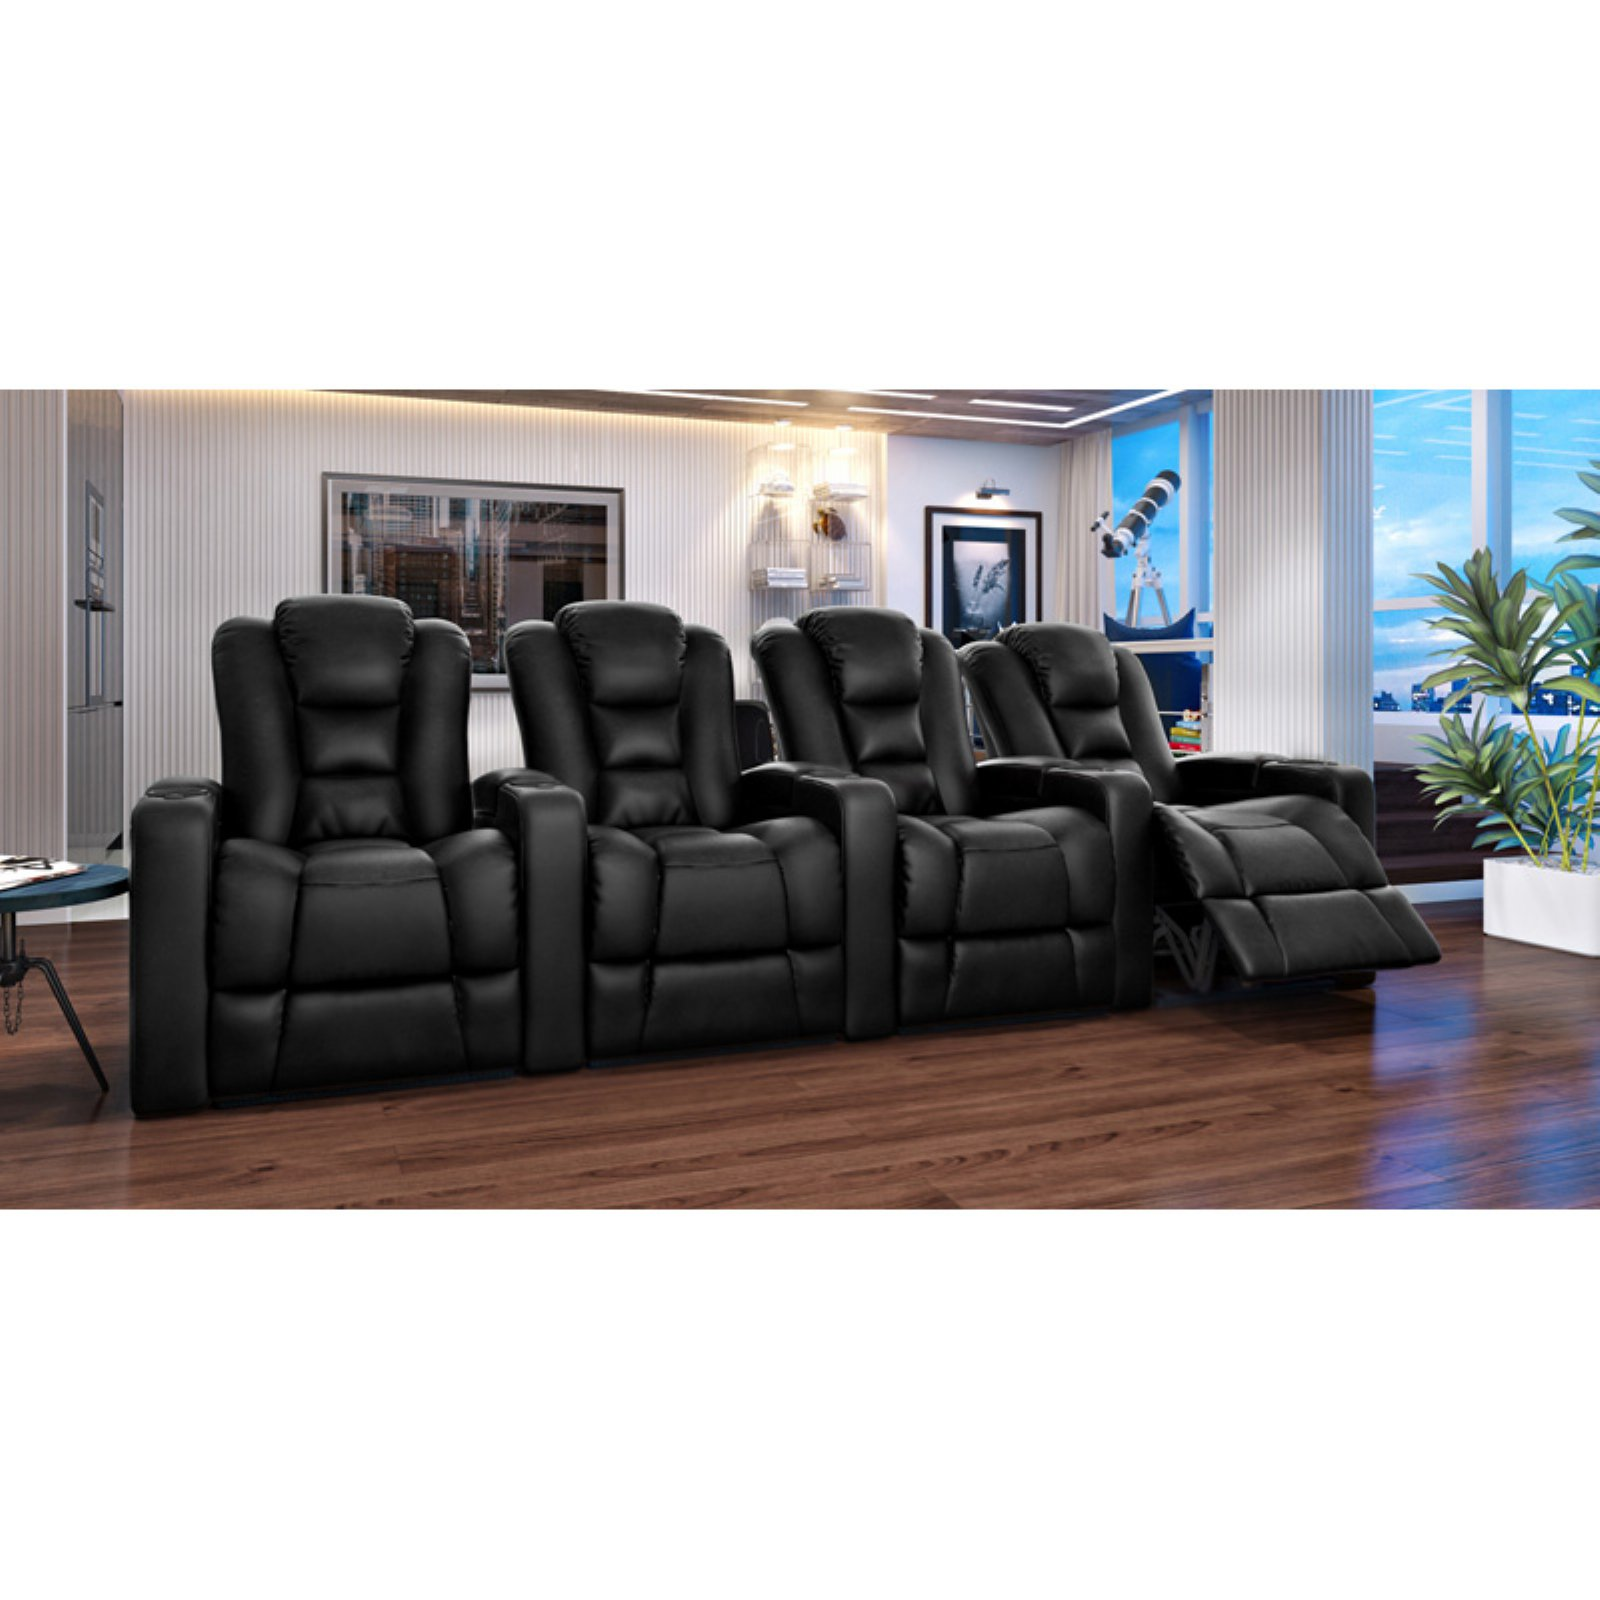 Octane Mega XL950 4 Seater Power Recline Bonded Leather Home Theater Seating